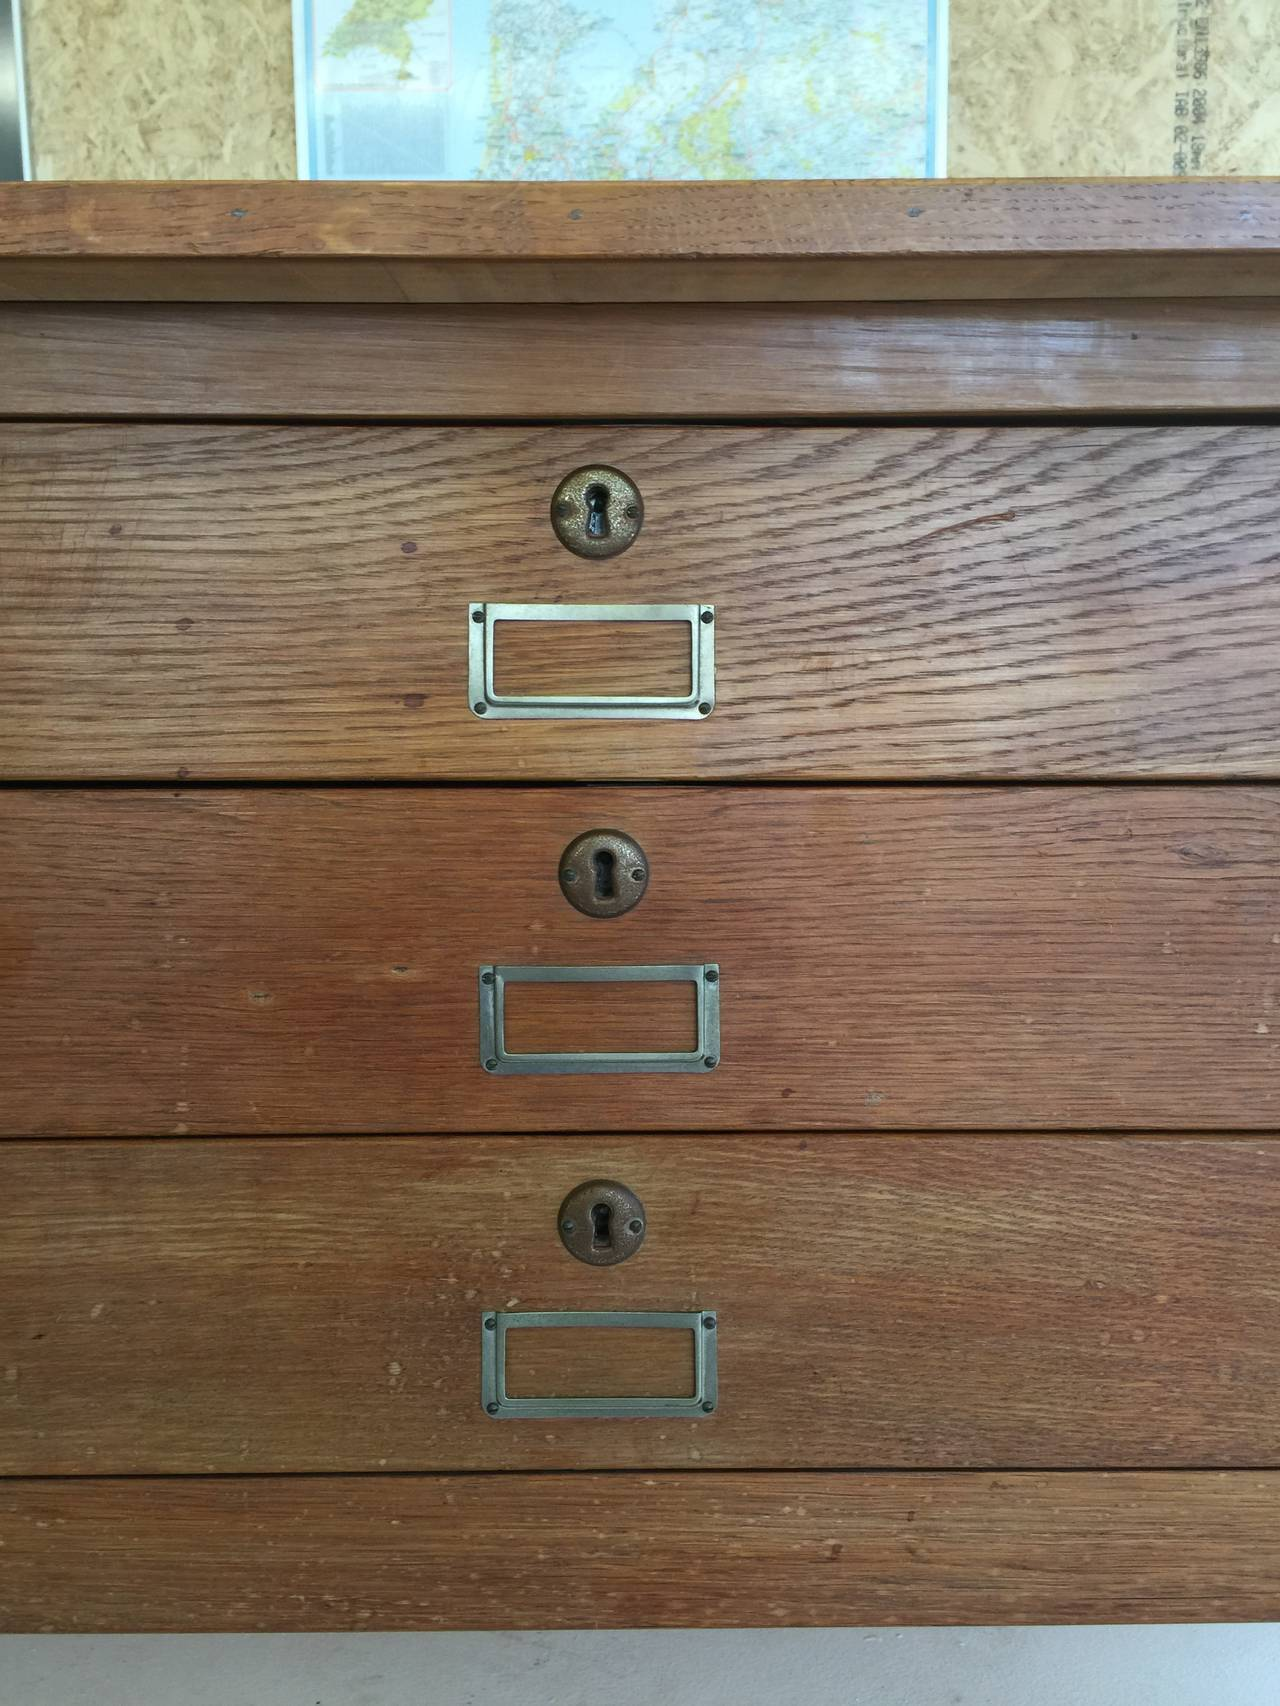 cabinet l drawer quarter nice f id sawn furniture design storage or letter oak wood drawers pieces file hardware with cabinets and case brass size modular flat grain map